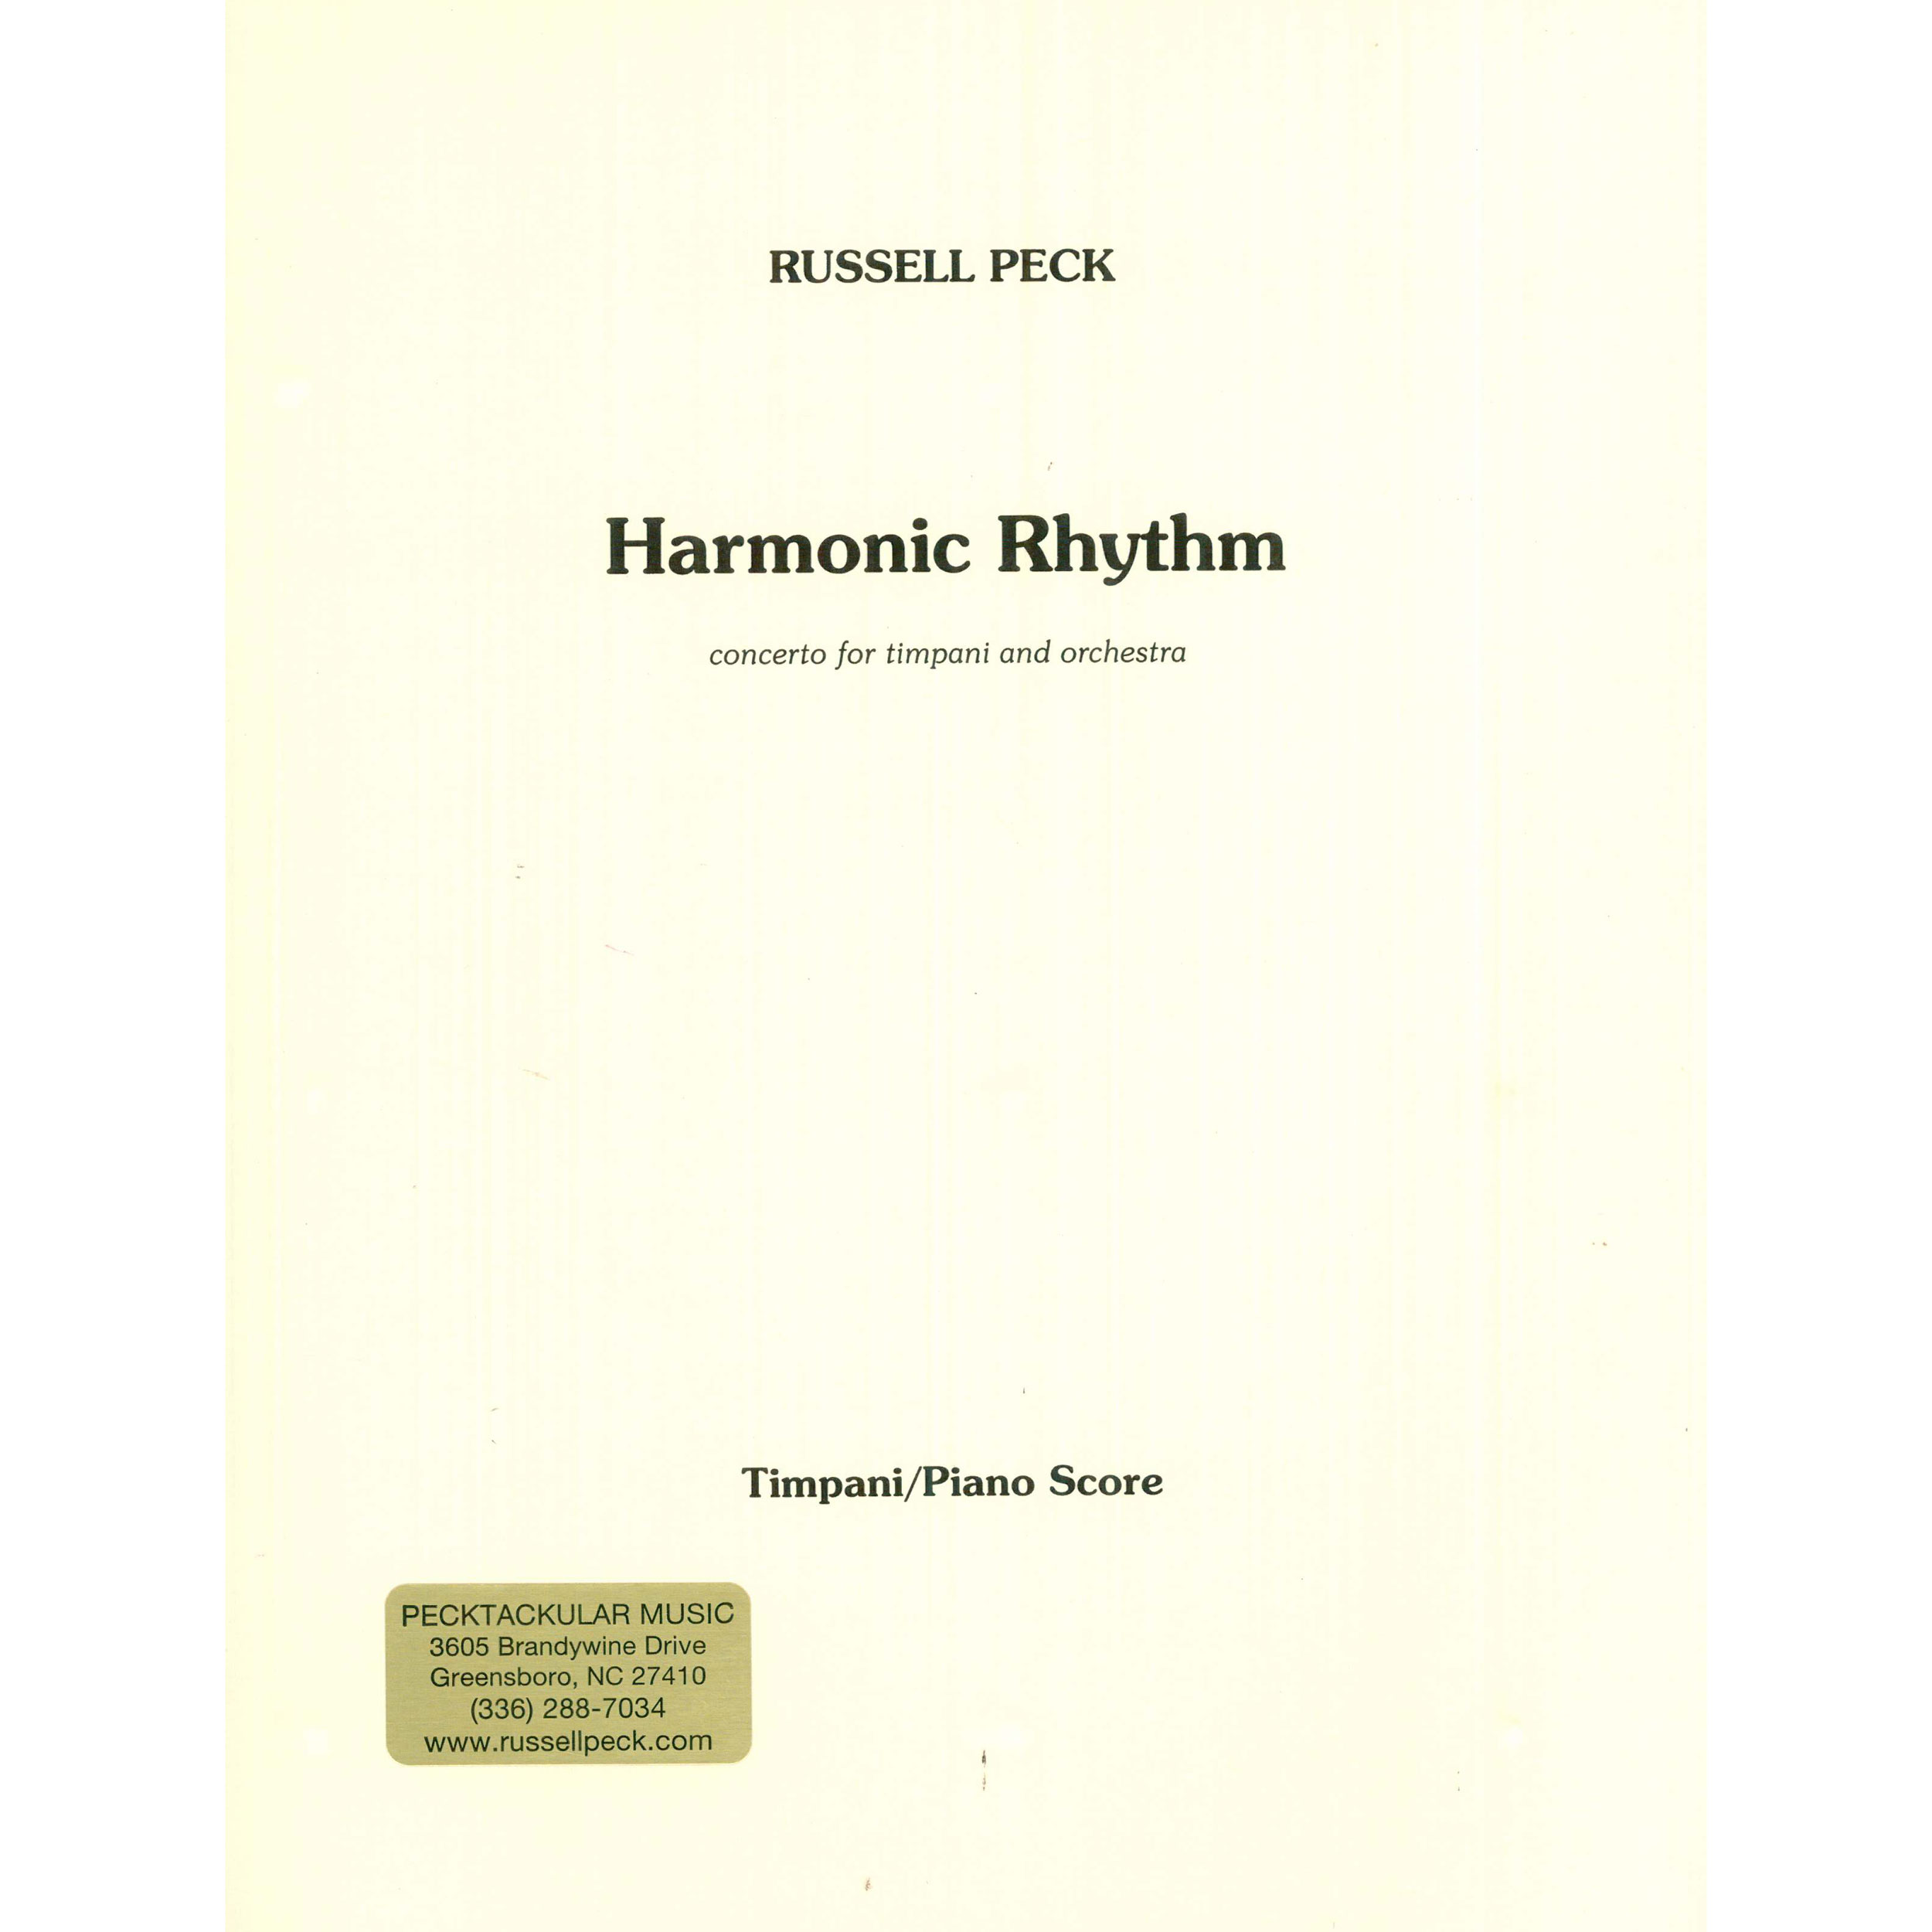 Harmonic Rhythm by Russell Peck (Piano Reduction)